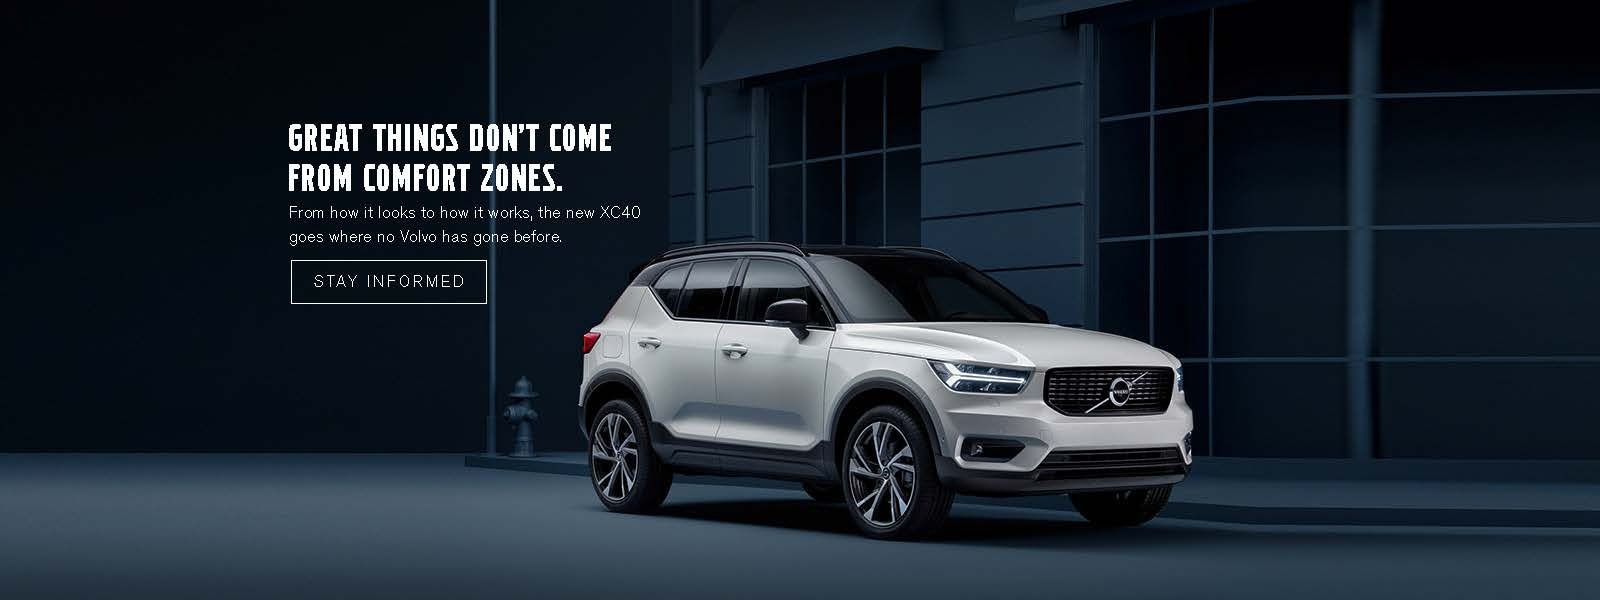 own connecticut volvo new milford next used dealers s previous in dealer ct